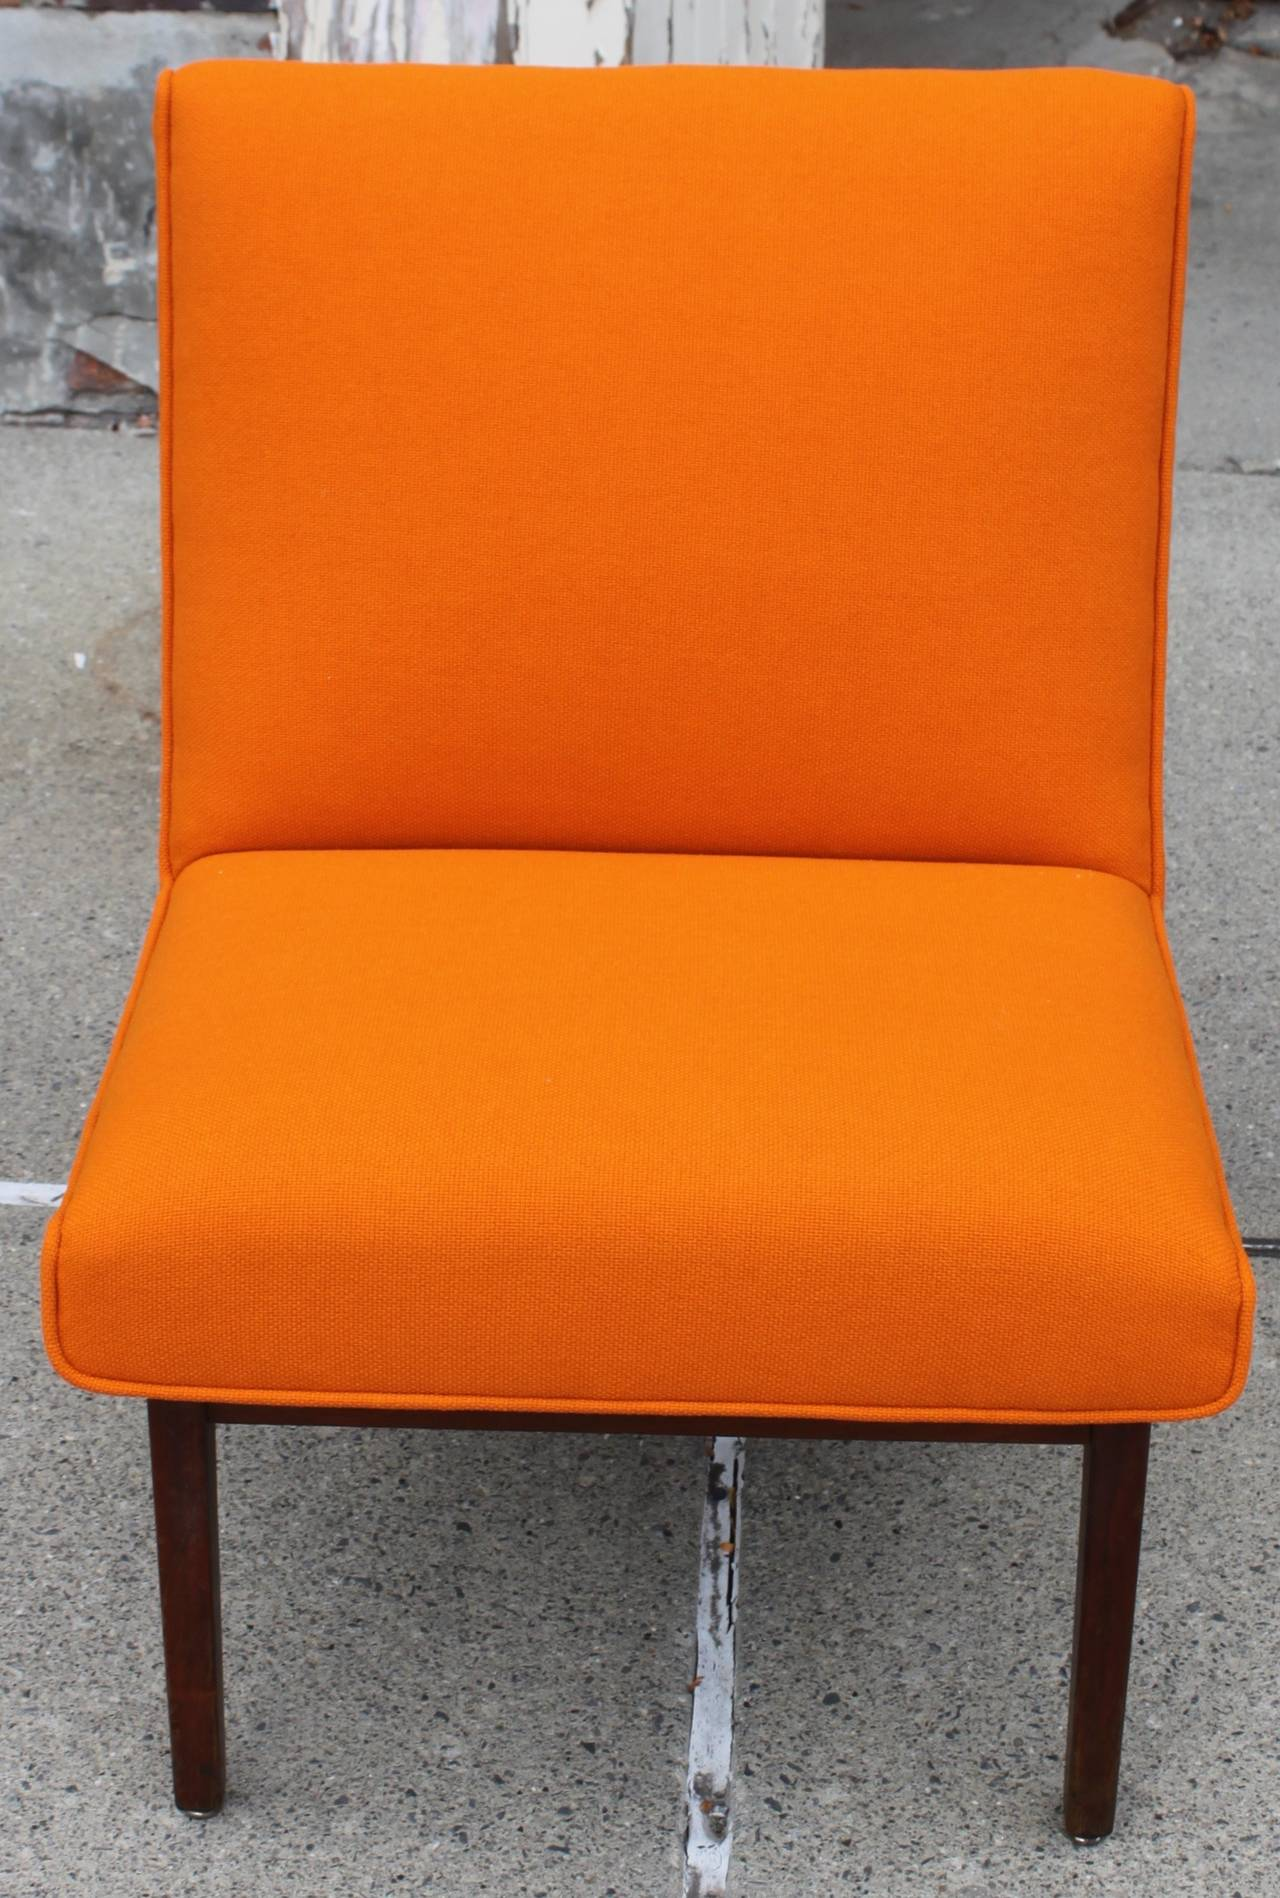 Womb chair dimensions - Vintage womb chair for sale ...